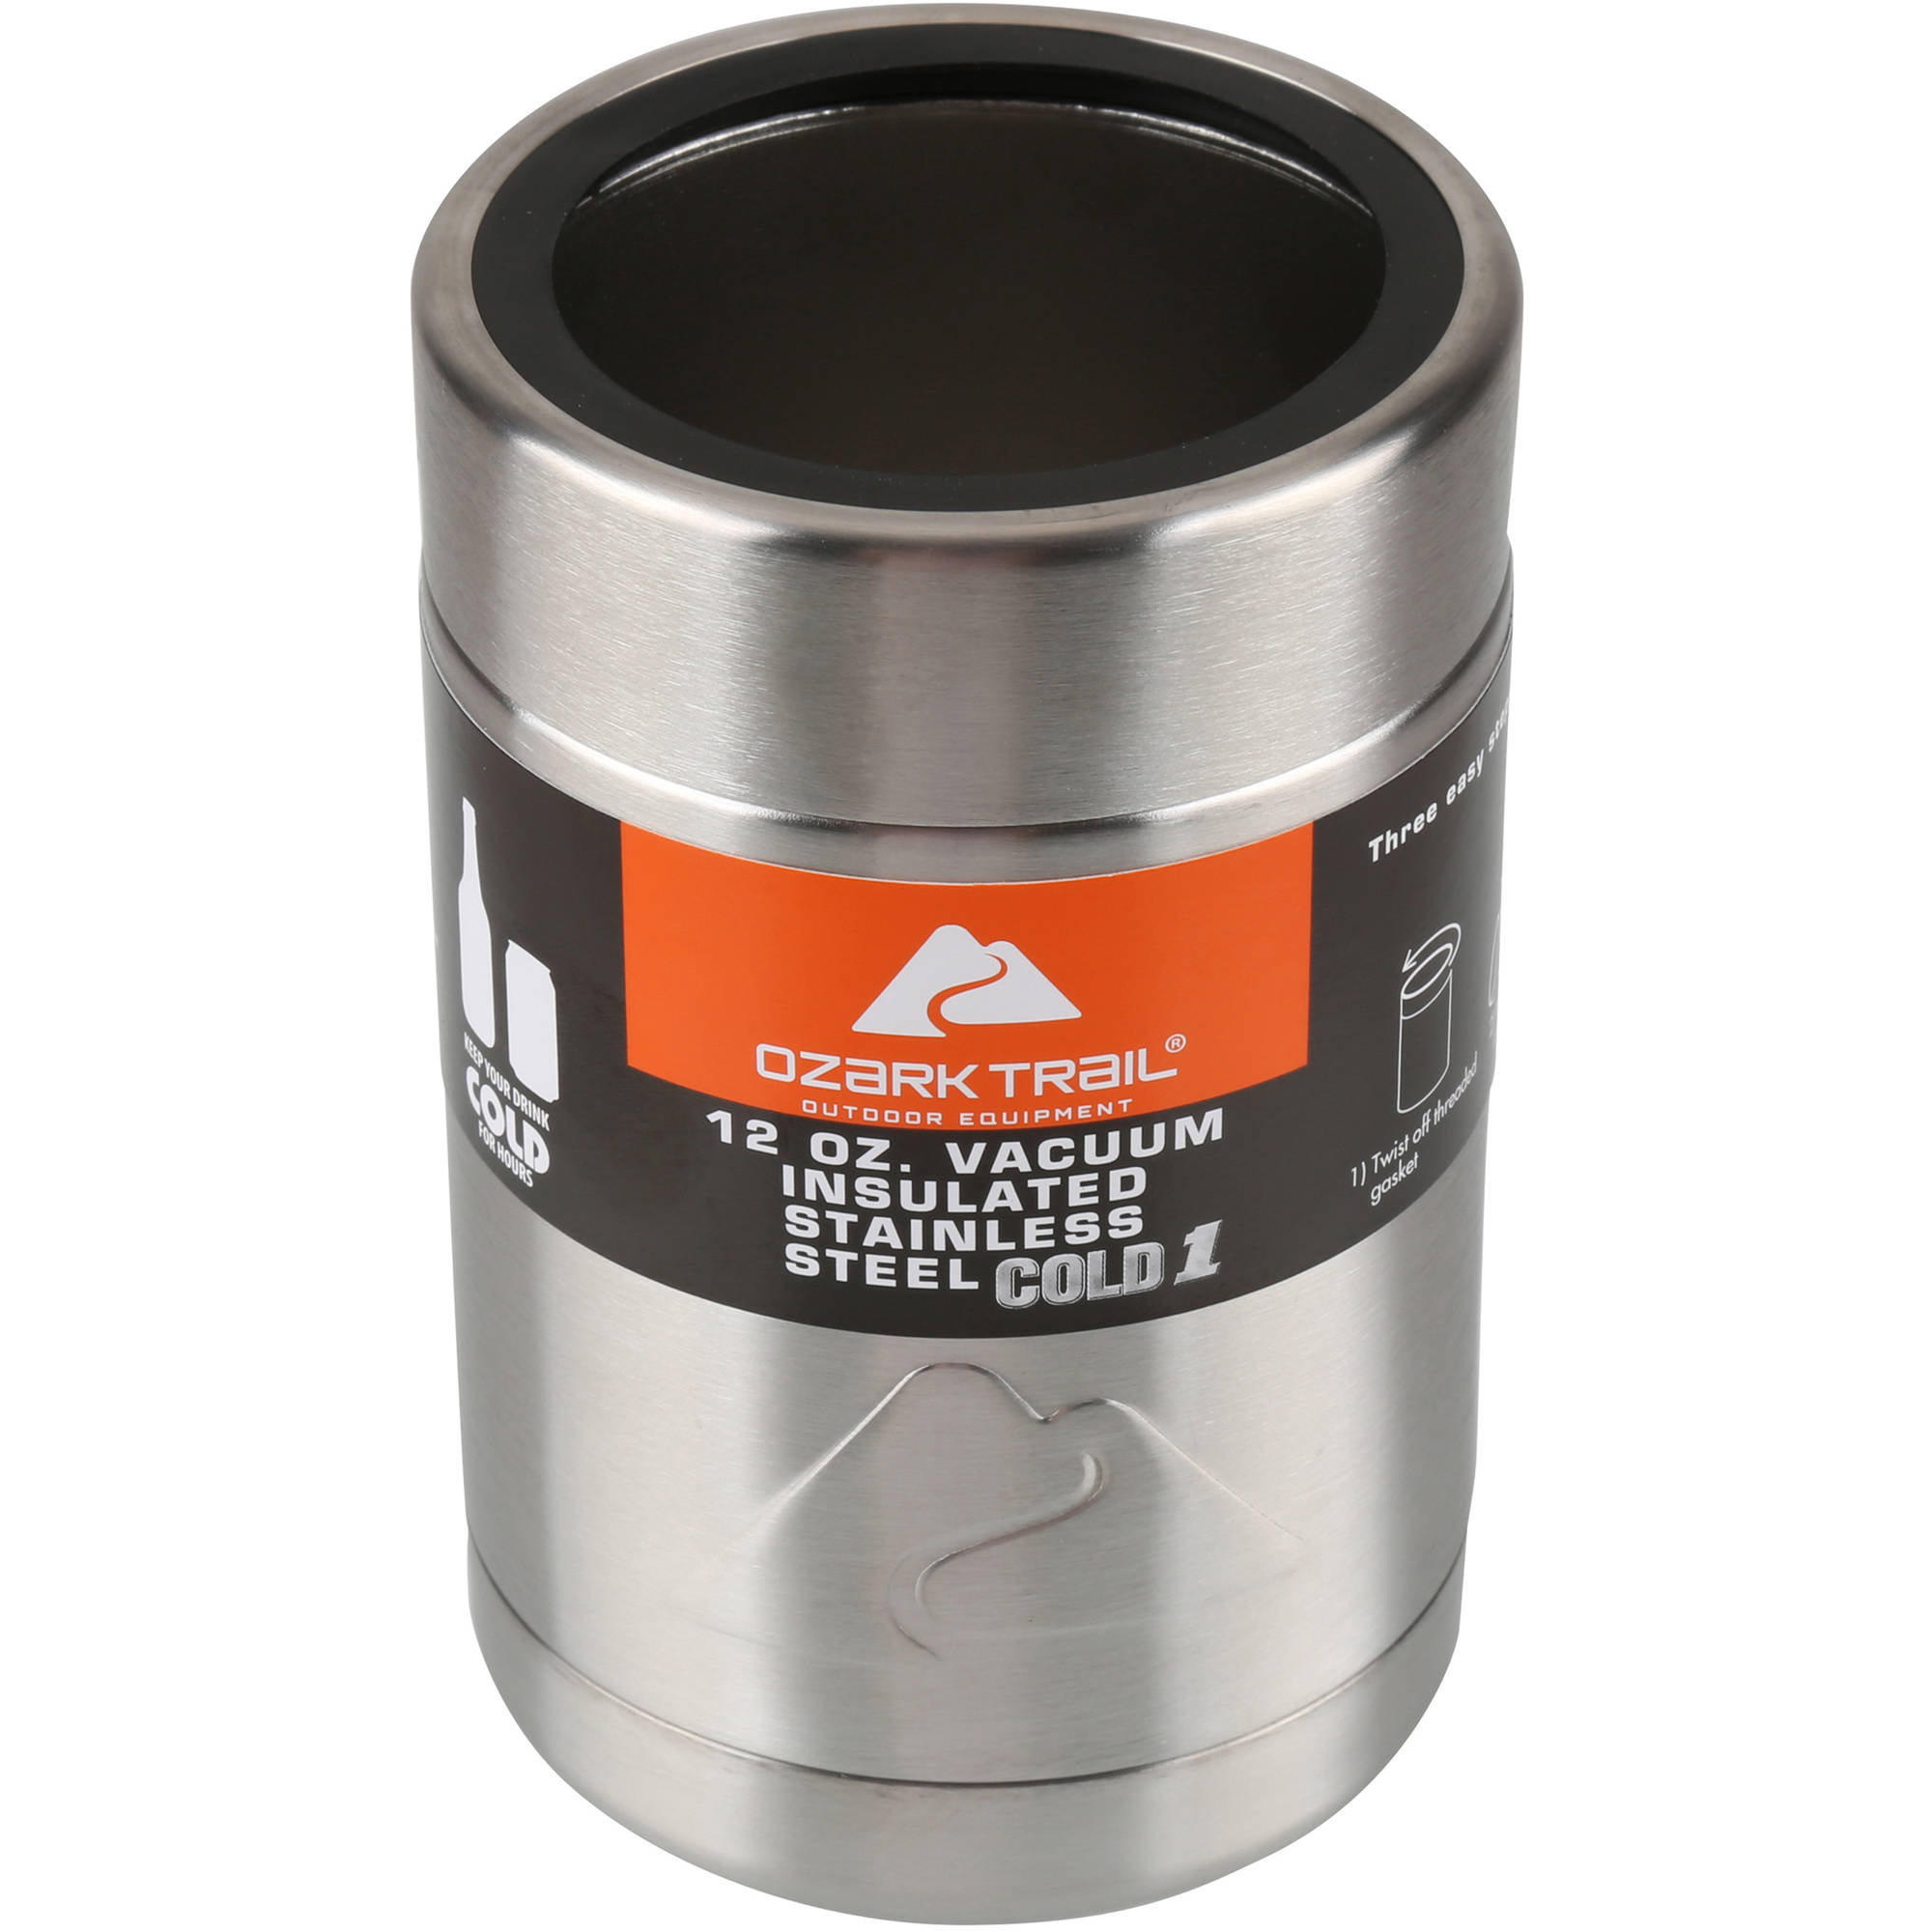 189191cde16 Ozark Trail 12-Ounce Vacuum Insulated Can Cooler with Metal Gasket Genuine